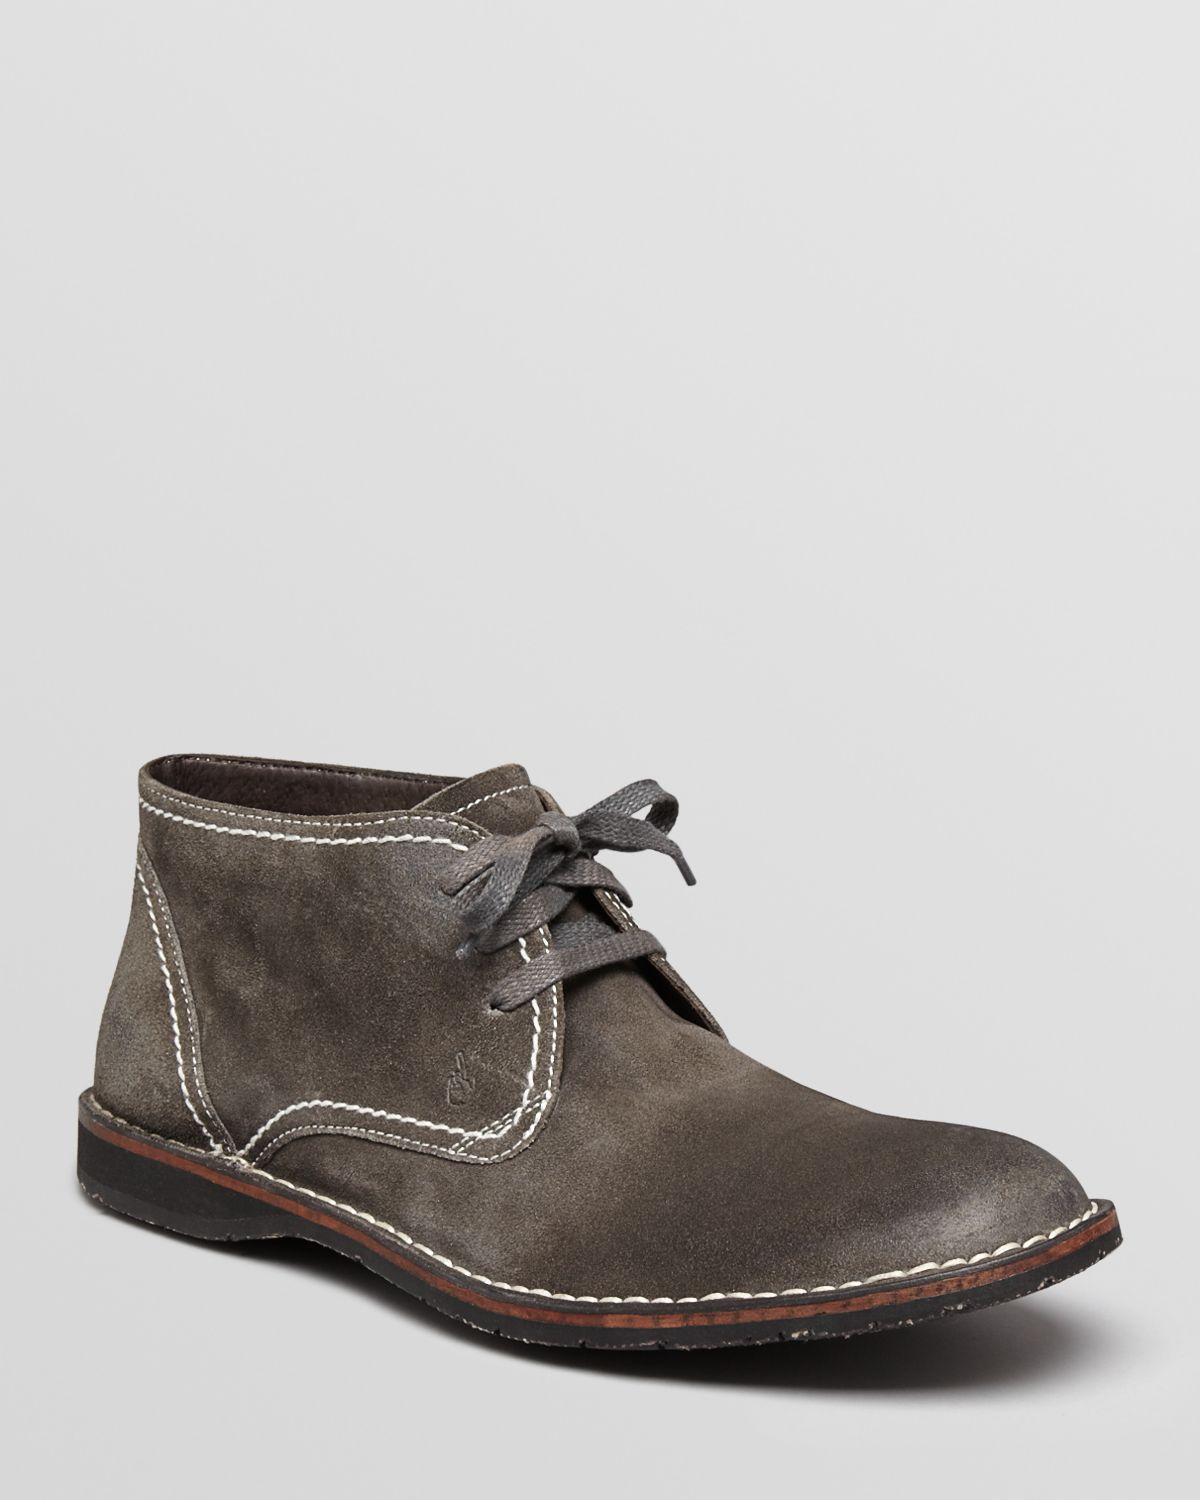 John varvatos Hipster Suede Chukka Boots in Black for Men | Lyst